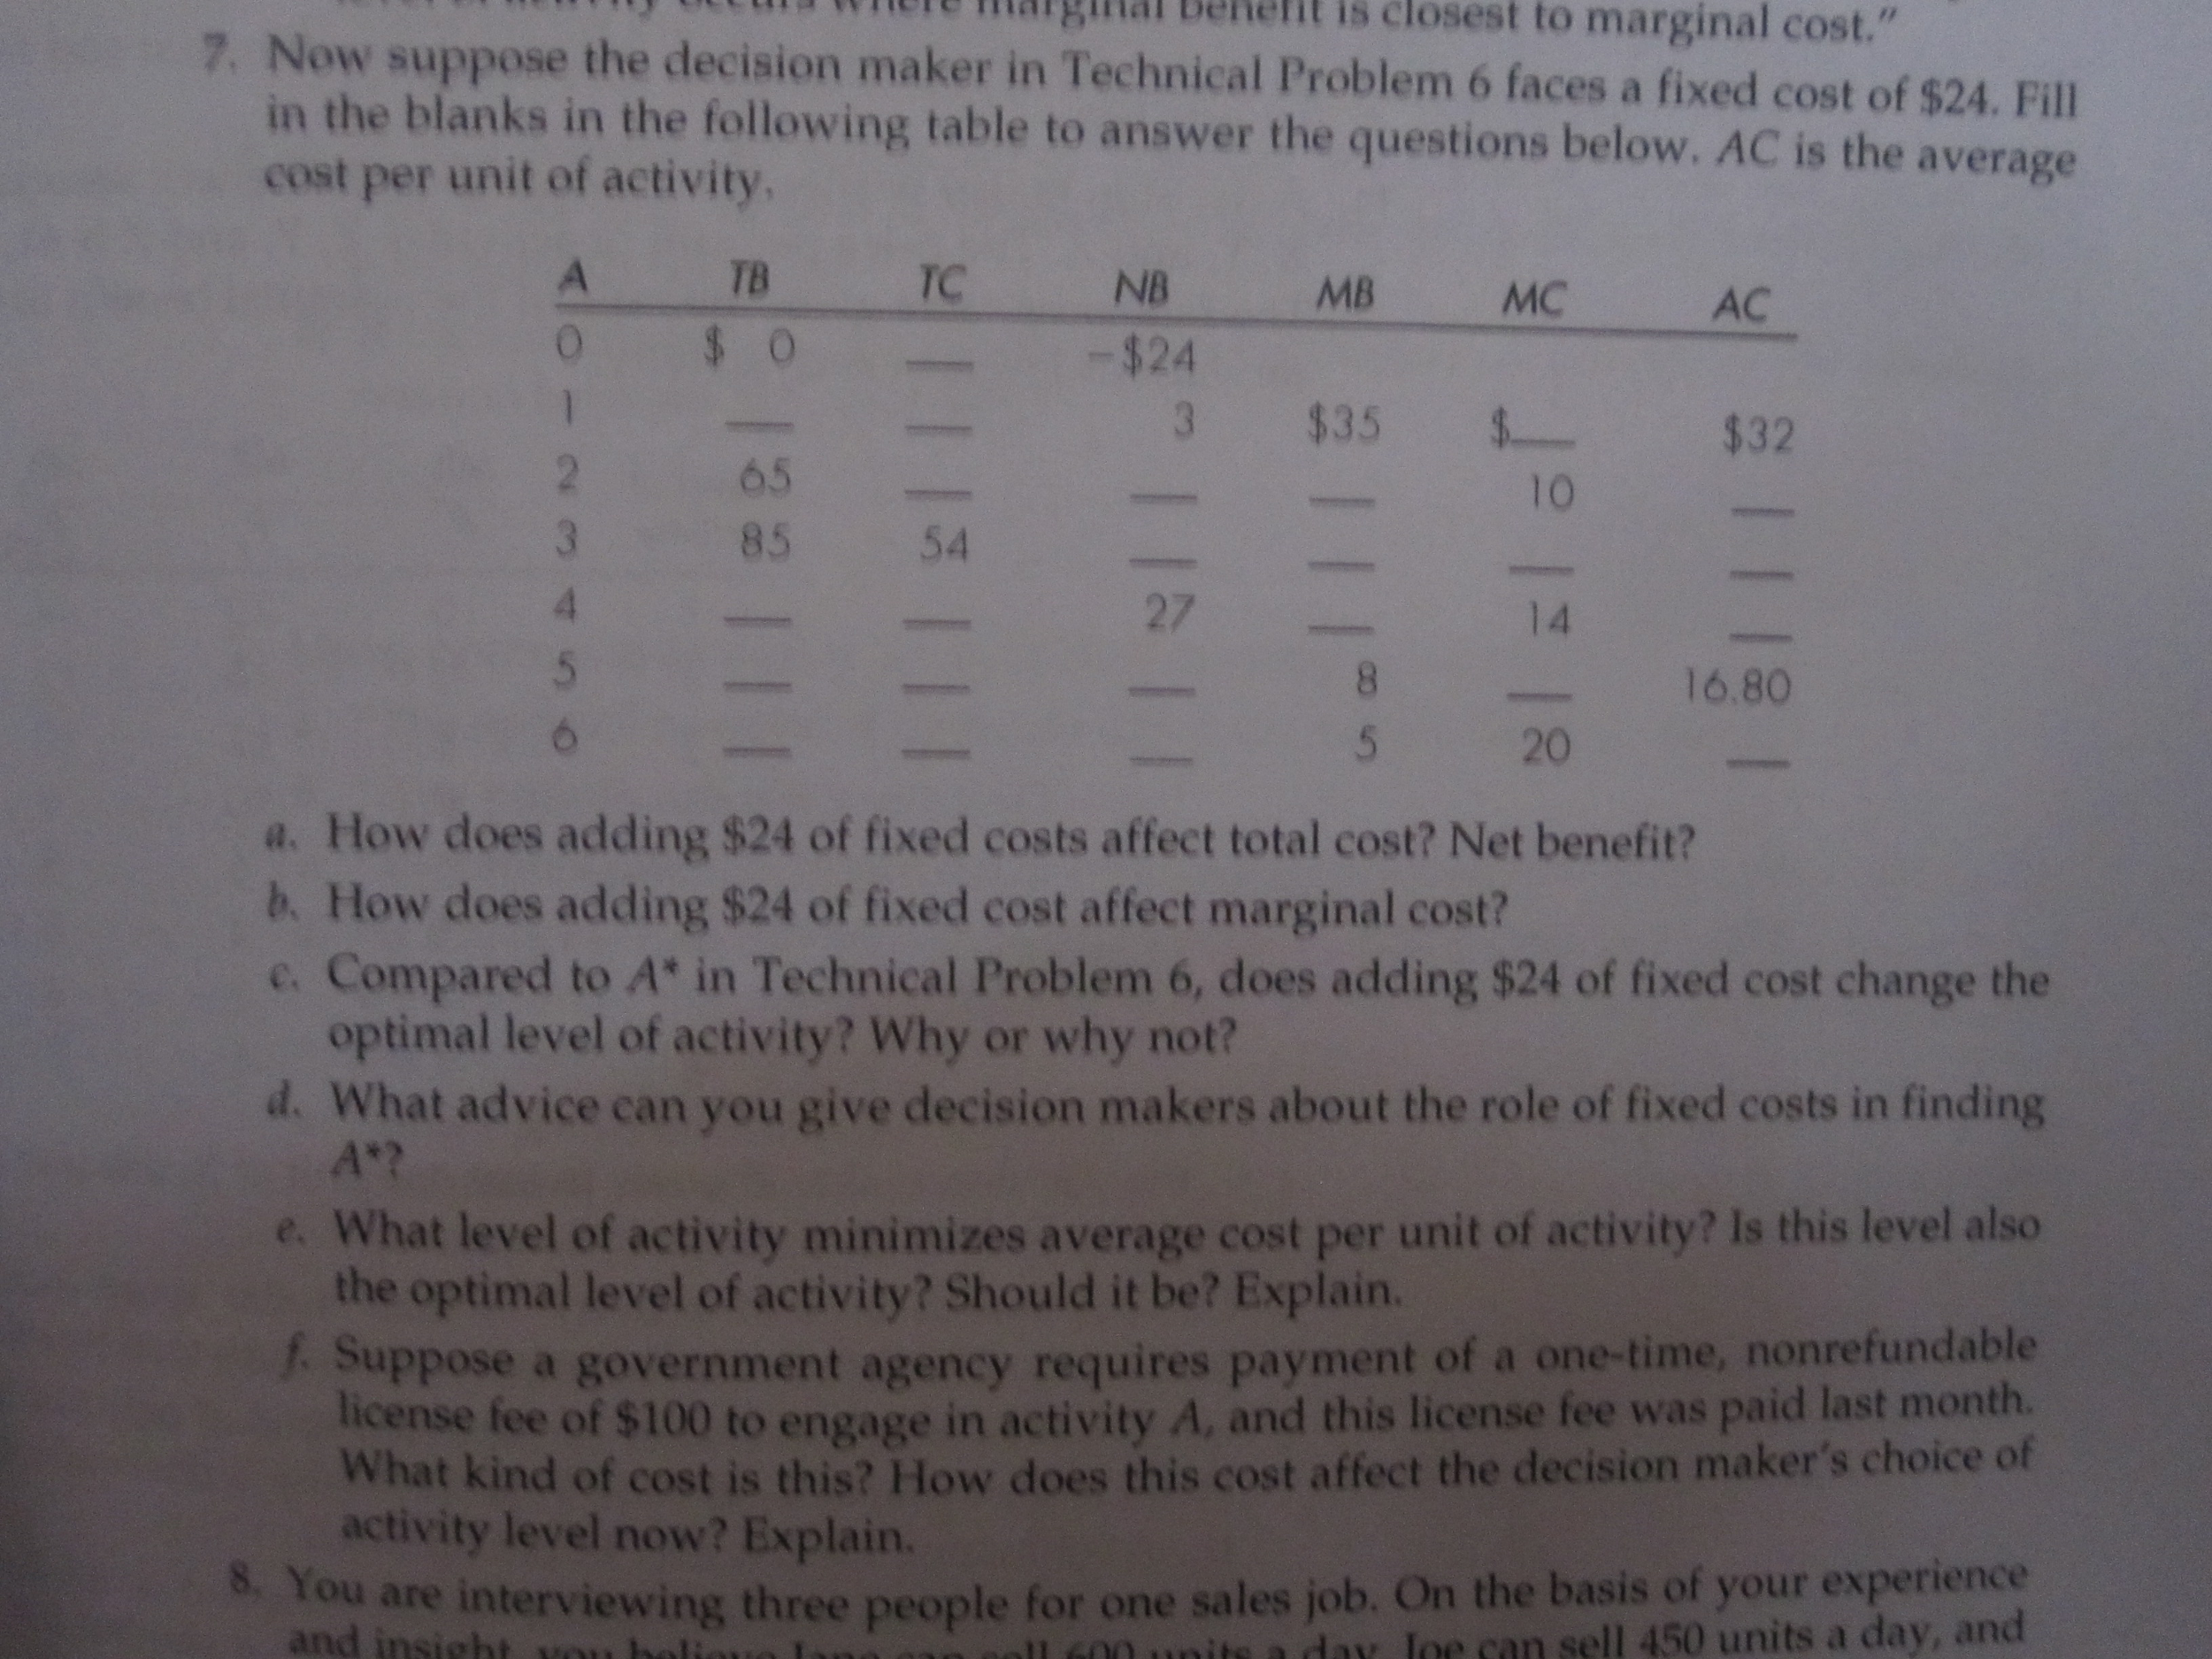 Now suppose the decision maker in technical proble for Table 6 fixed costs